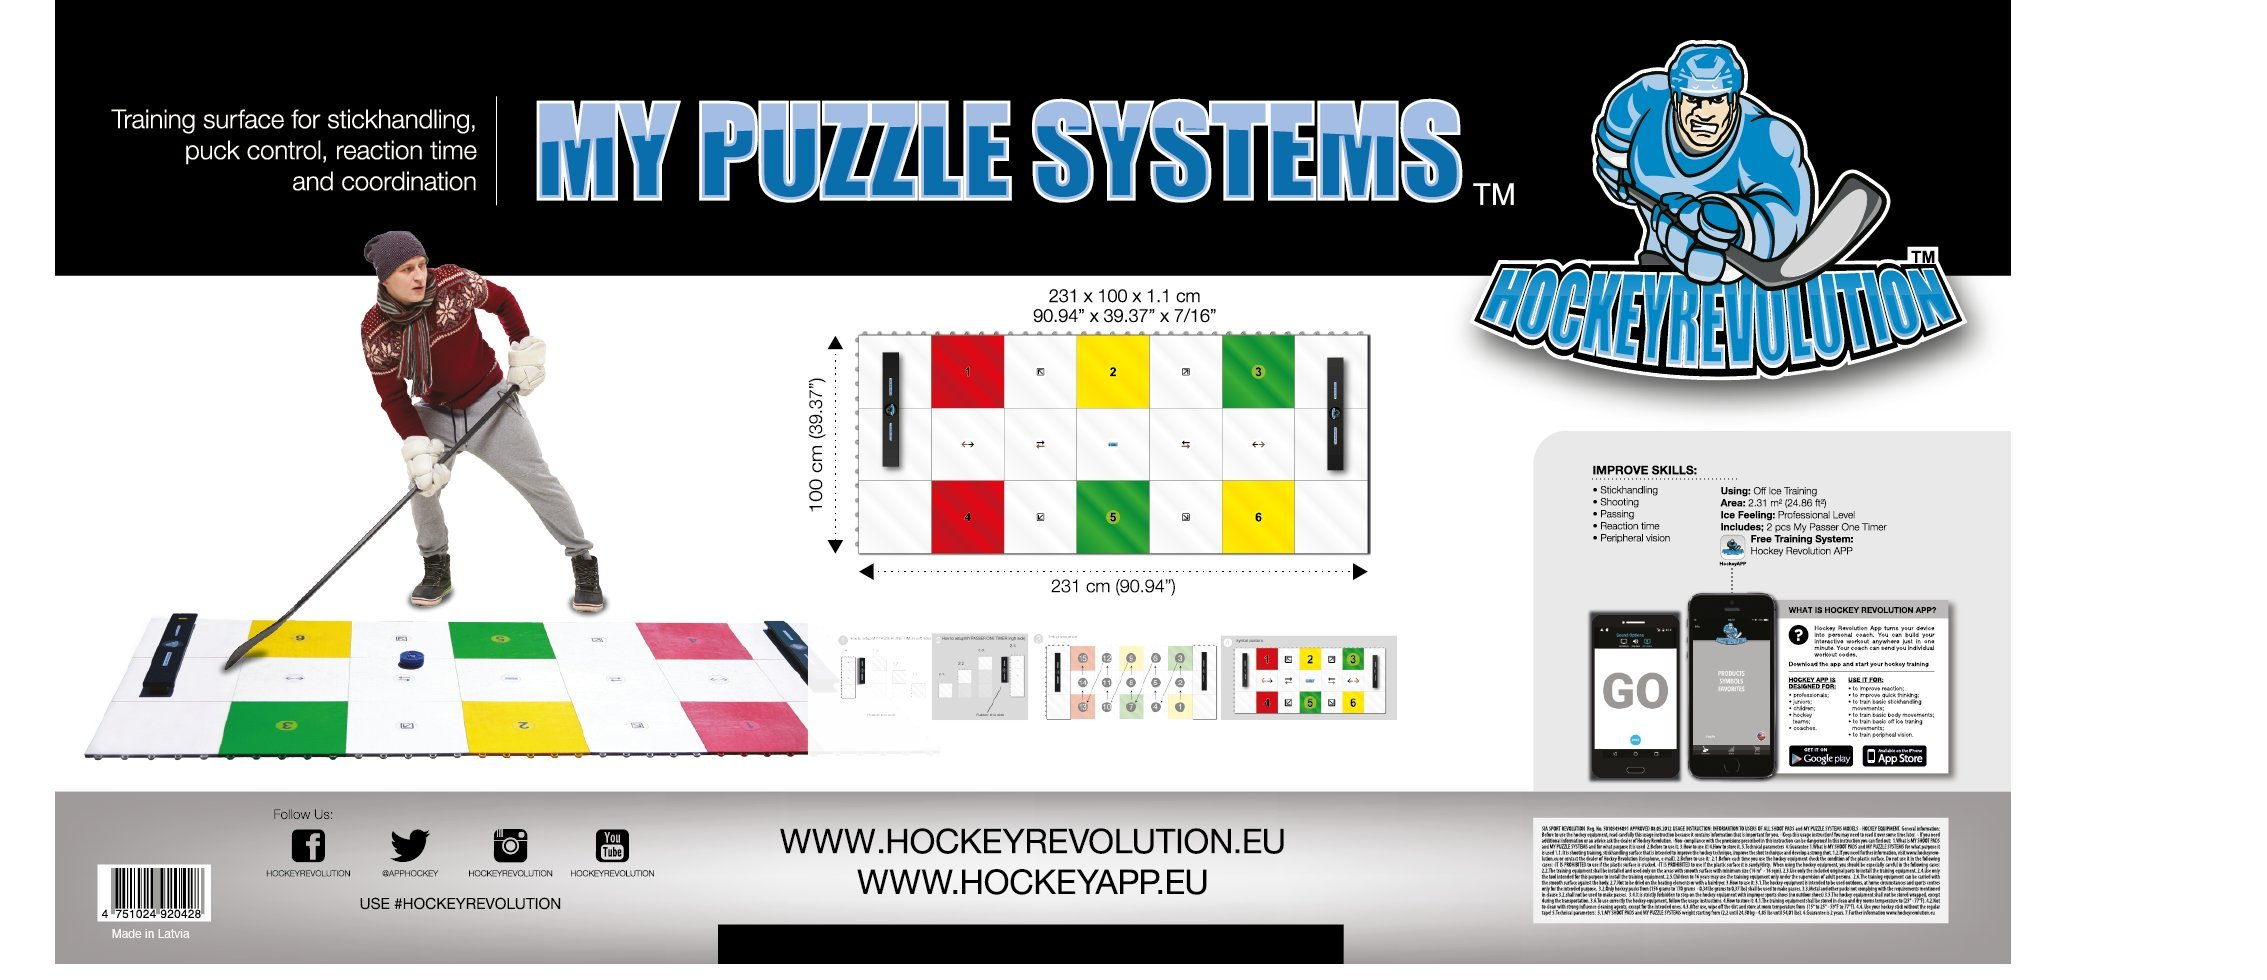 Hockey Revolution Professional Training Flooring Tile - MY PUZZLE SYSTEMS by Hockey Revolution (Image #3)